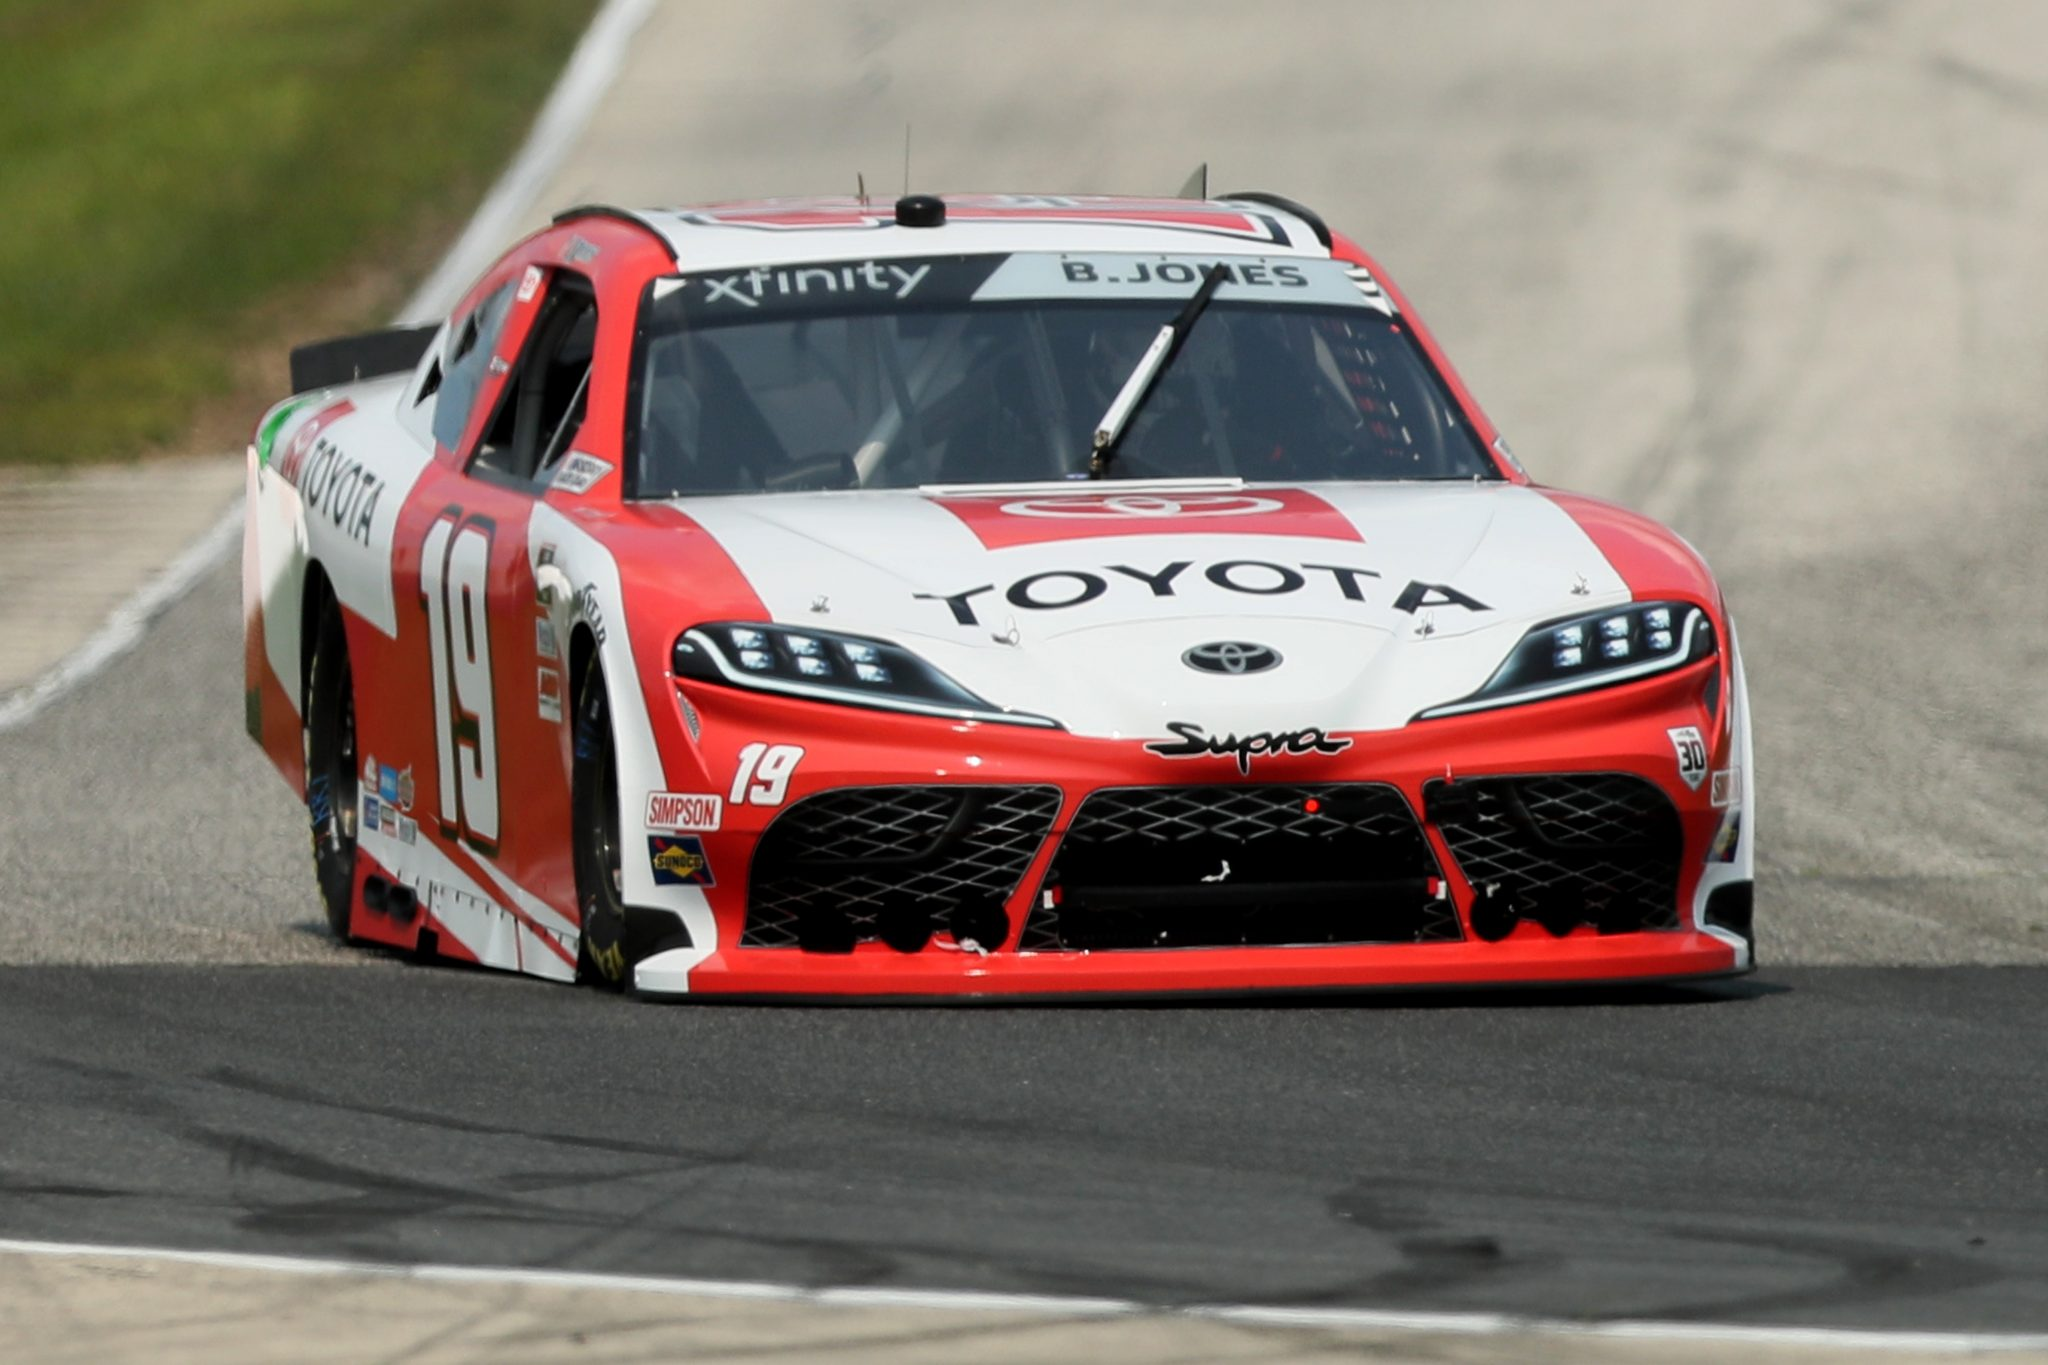 ELKHART LAKE, WISCONSIN - JULY 02: Brandon Jones, driver of the #19 Toyota Toyota, drives during practice for the NASCAR Xfinity Series Henry 180 at Road America on July 02, 2021 in Elkhart Lake, Wisconsin. (Photo by James Gilbert/Getty Images) | Getty Images